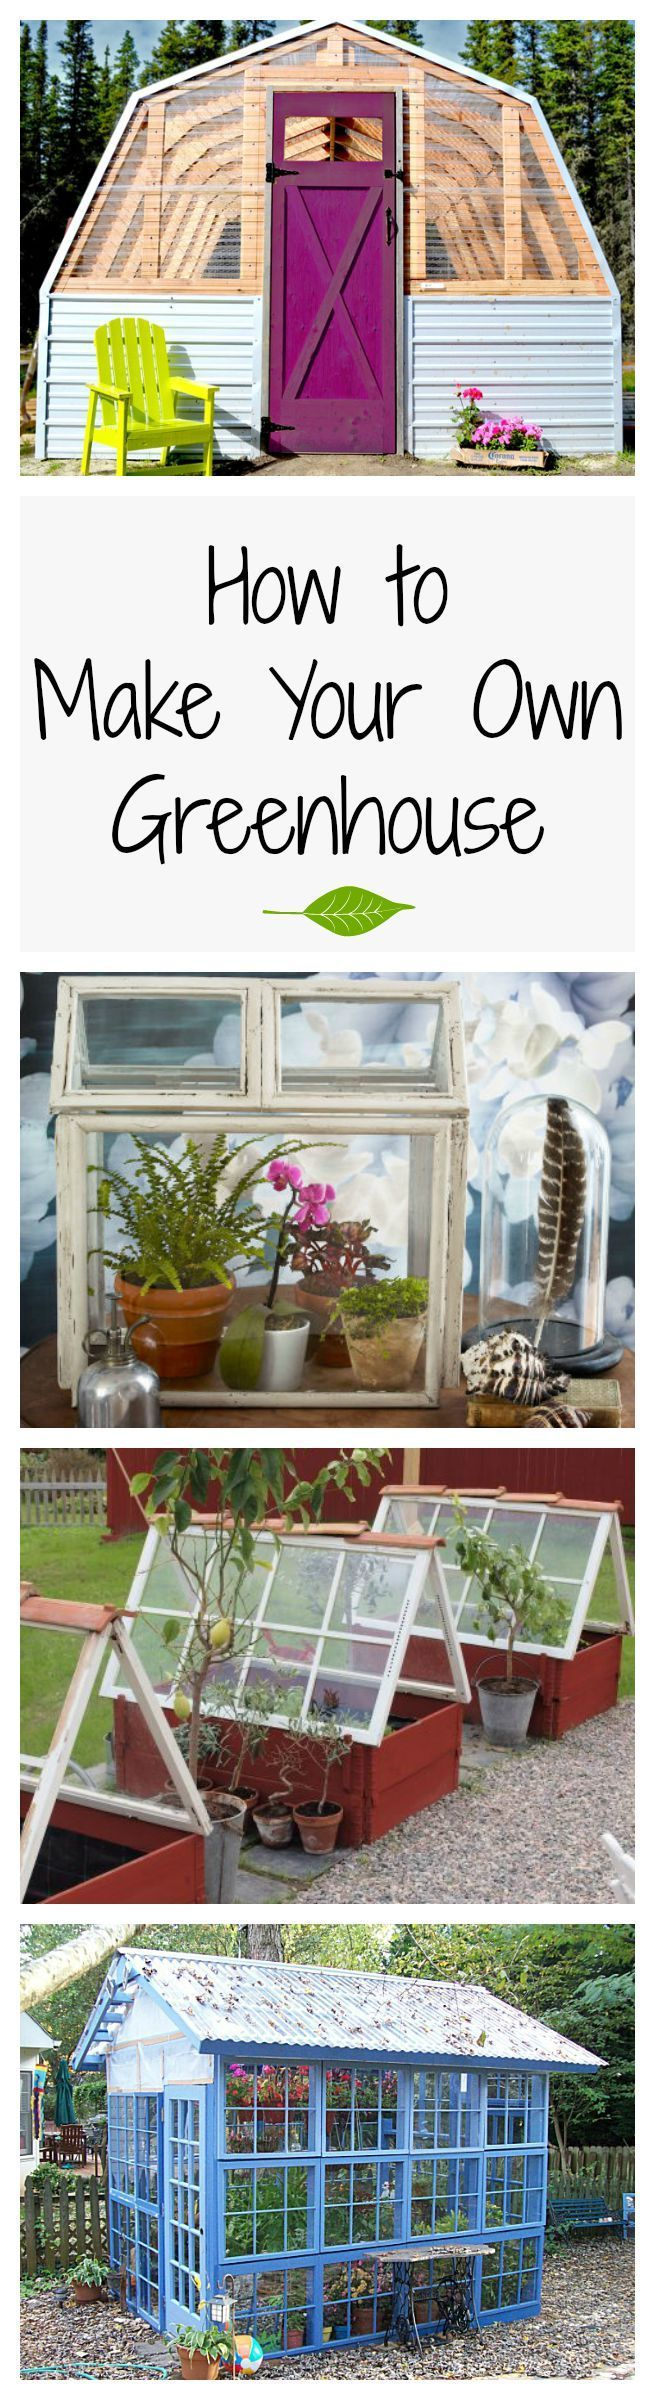 15 diy greenhouses that will beautify your backyard